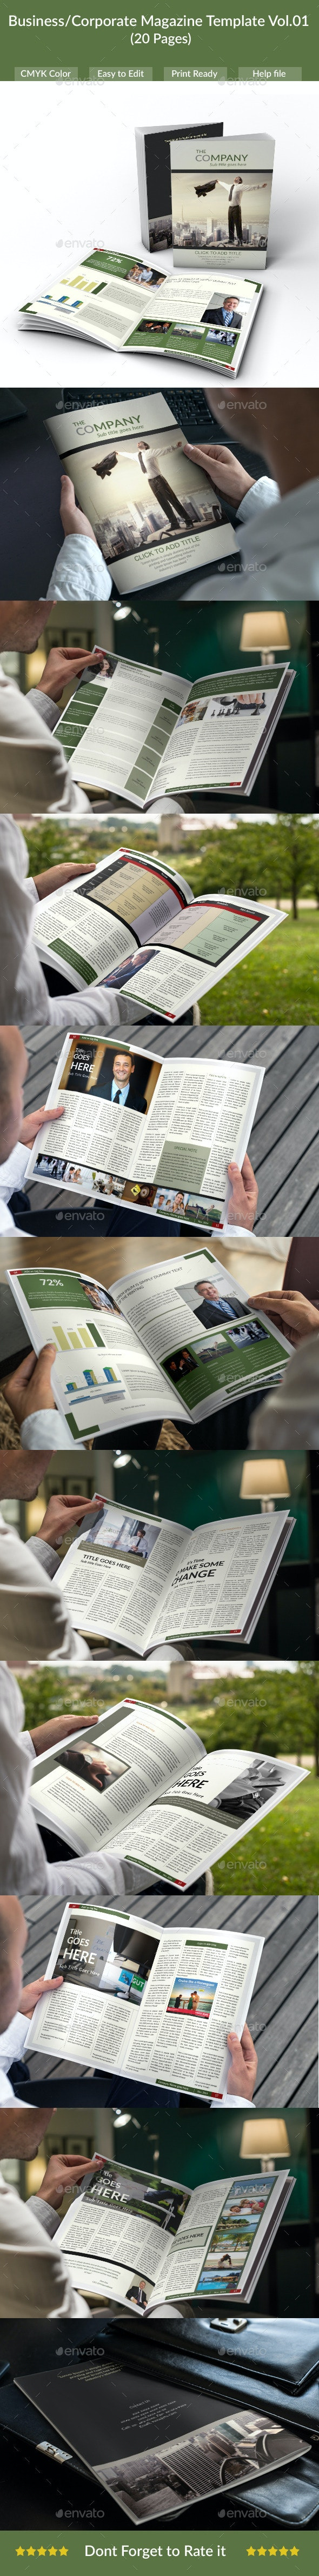 Business/Corporate Magazine Template (20 Pages) - Vol.01 - Magazines Print Templates